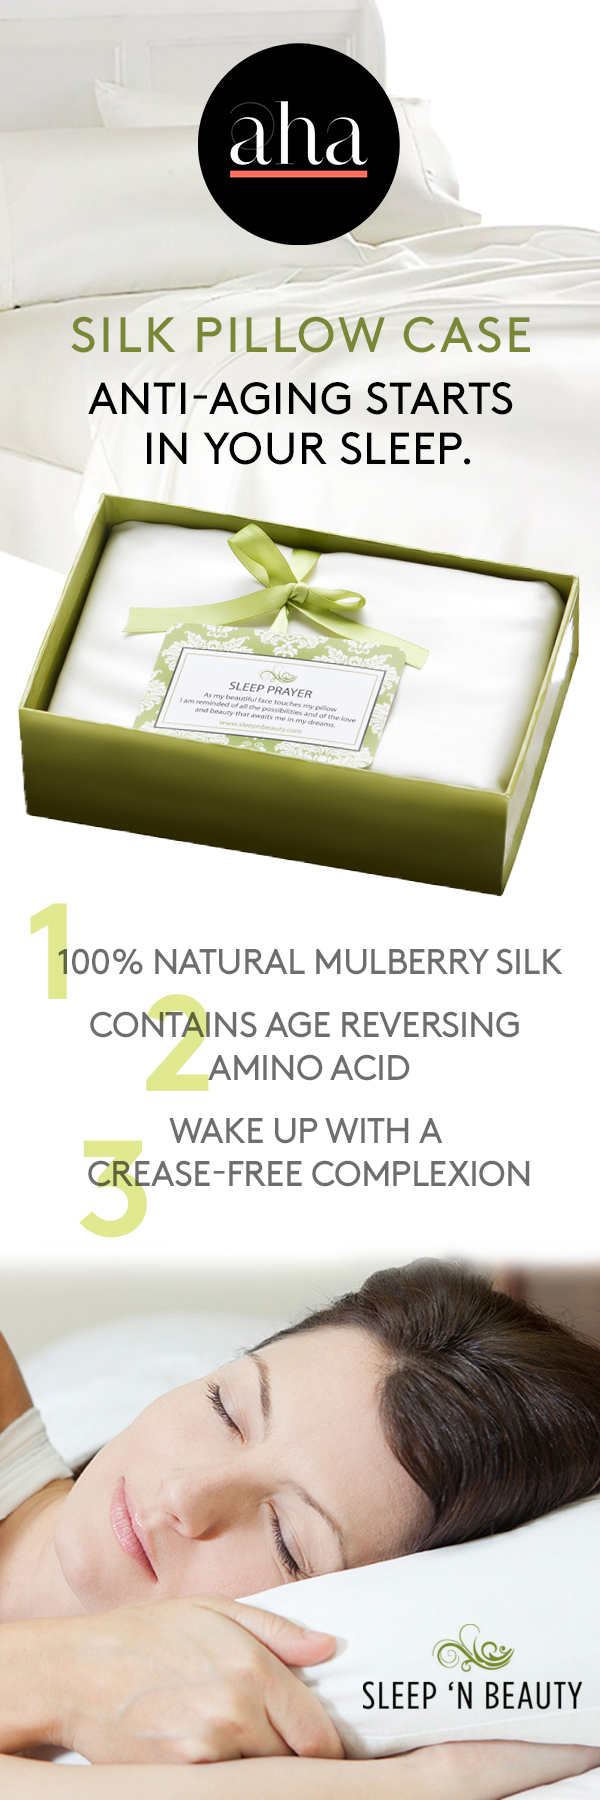 Best Silk Pillowcase For Skin Awesome Pure Mulberry Silk Pillowcase  Reverse Aging Facial And Natural Design Inspiration